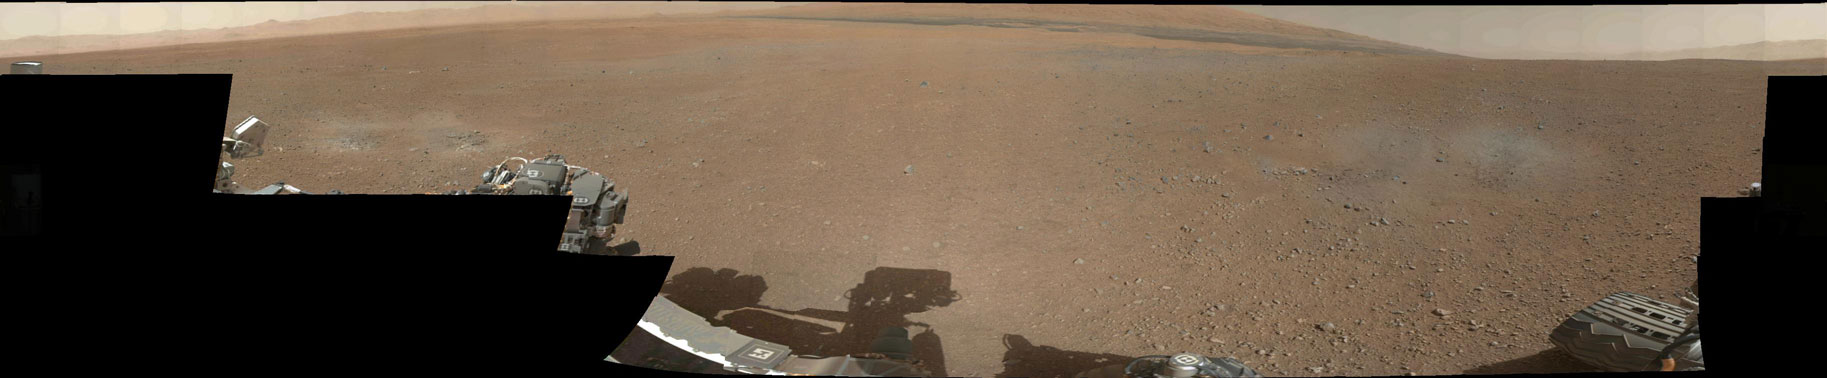 MSL's landing spot in Gale Crater